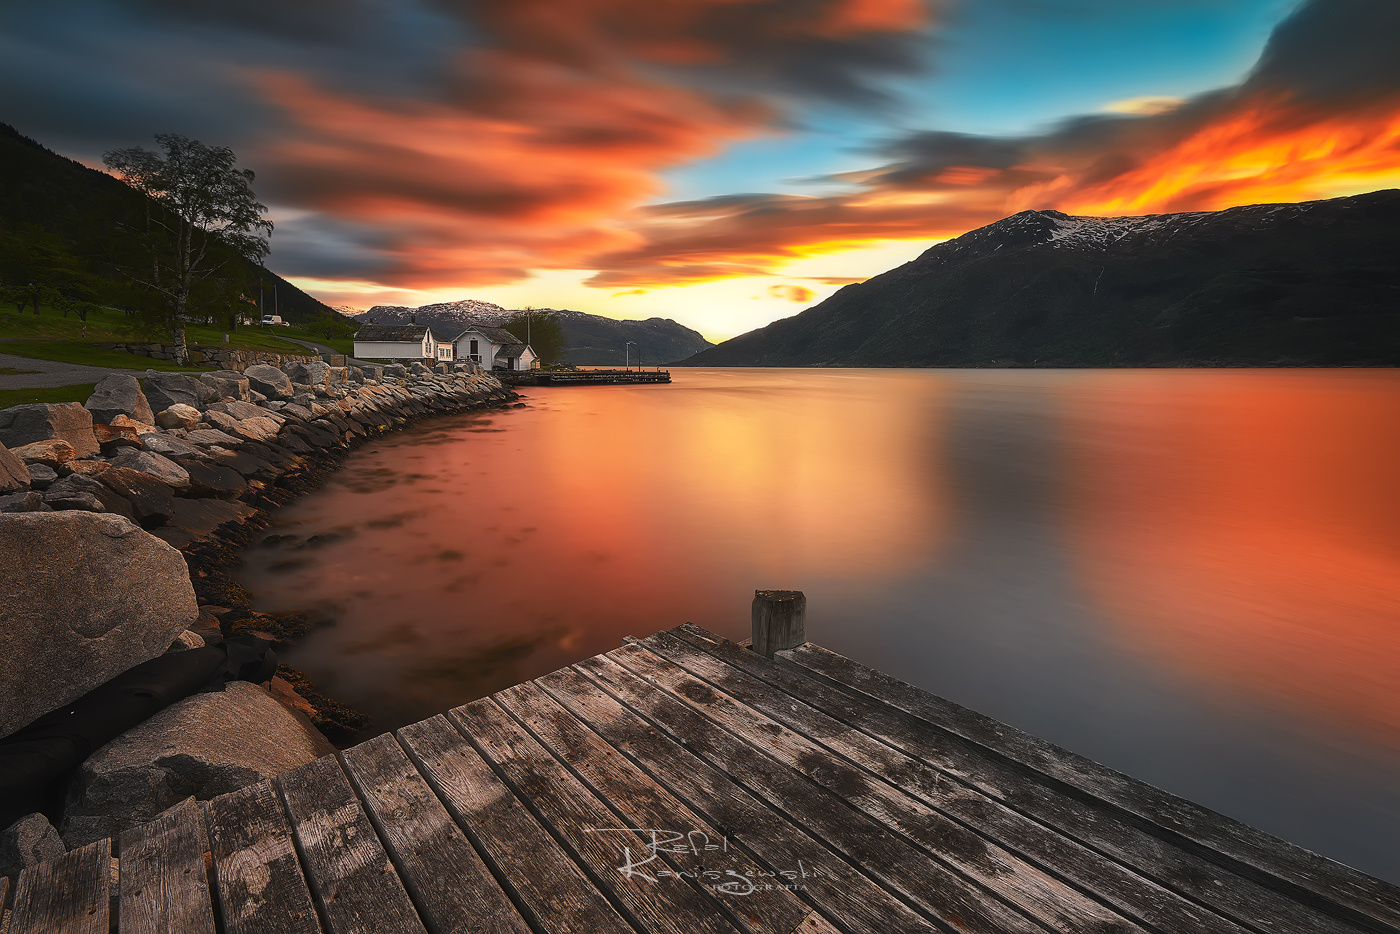 Sunset over the fjord by Rafal Kani